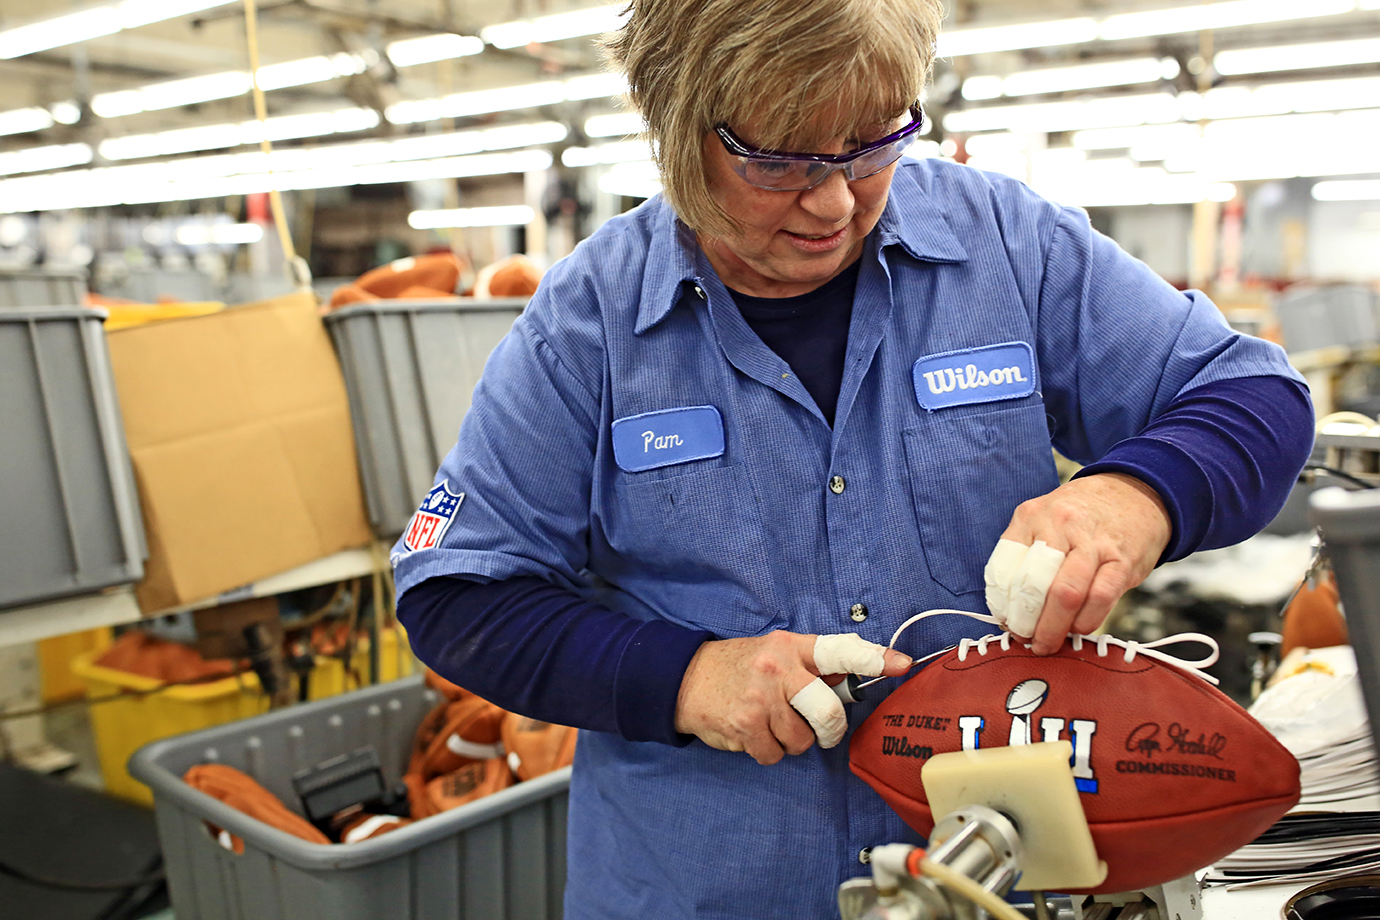 Pam Boutwell, an employee at Wilson's Ada, Ohio factory, stitches one of the official Super Bowl balls.